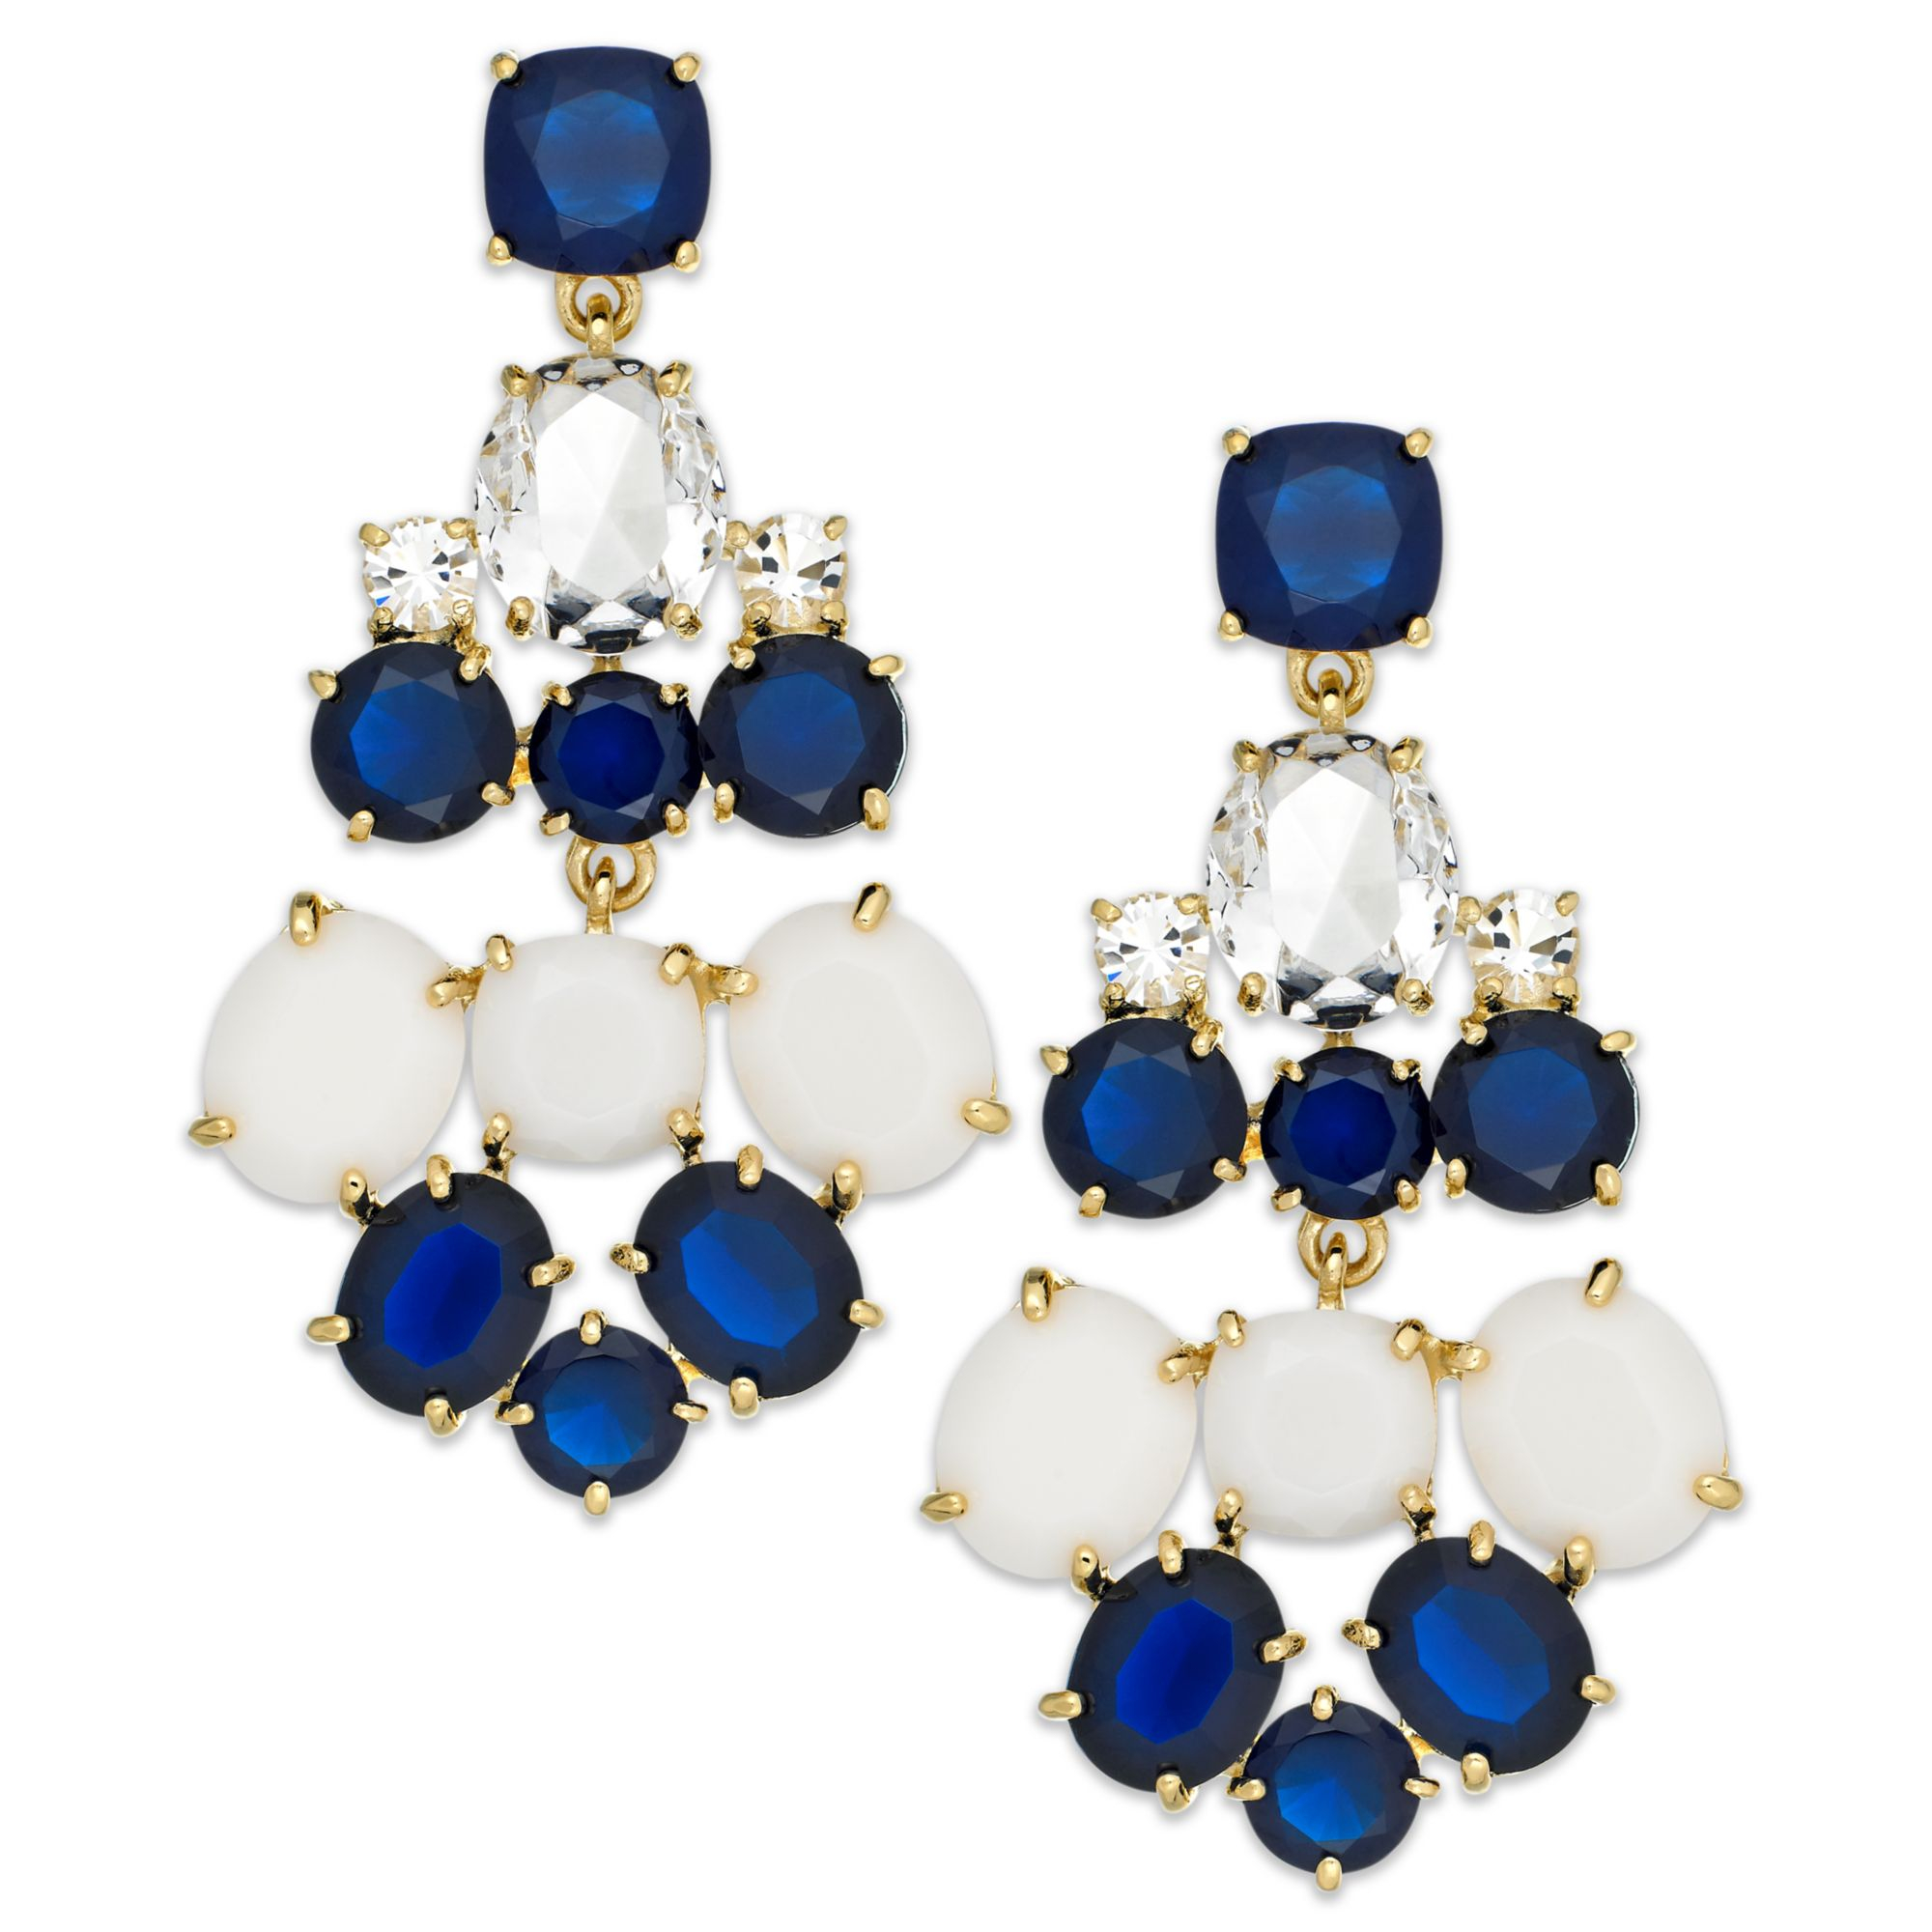 3d5d5d8c330c5 kate spade new york Goldtone Blue And White Stone Chandelier Earrings